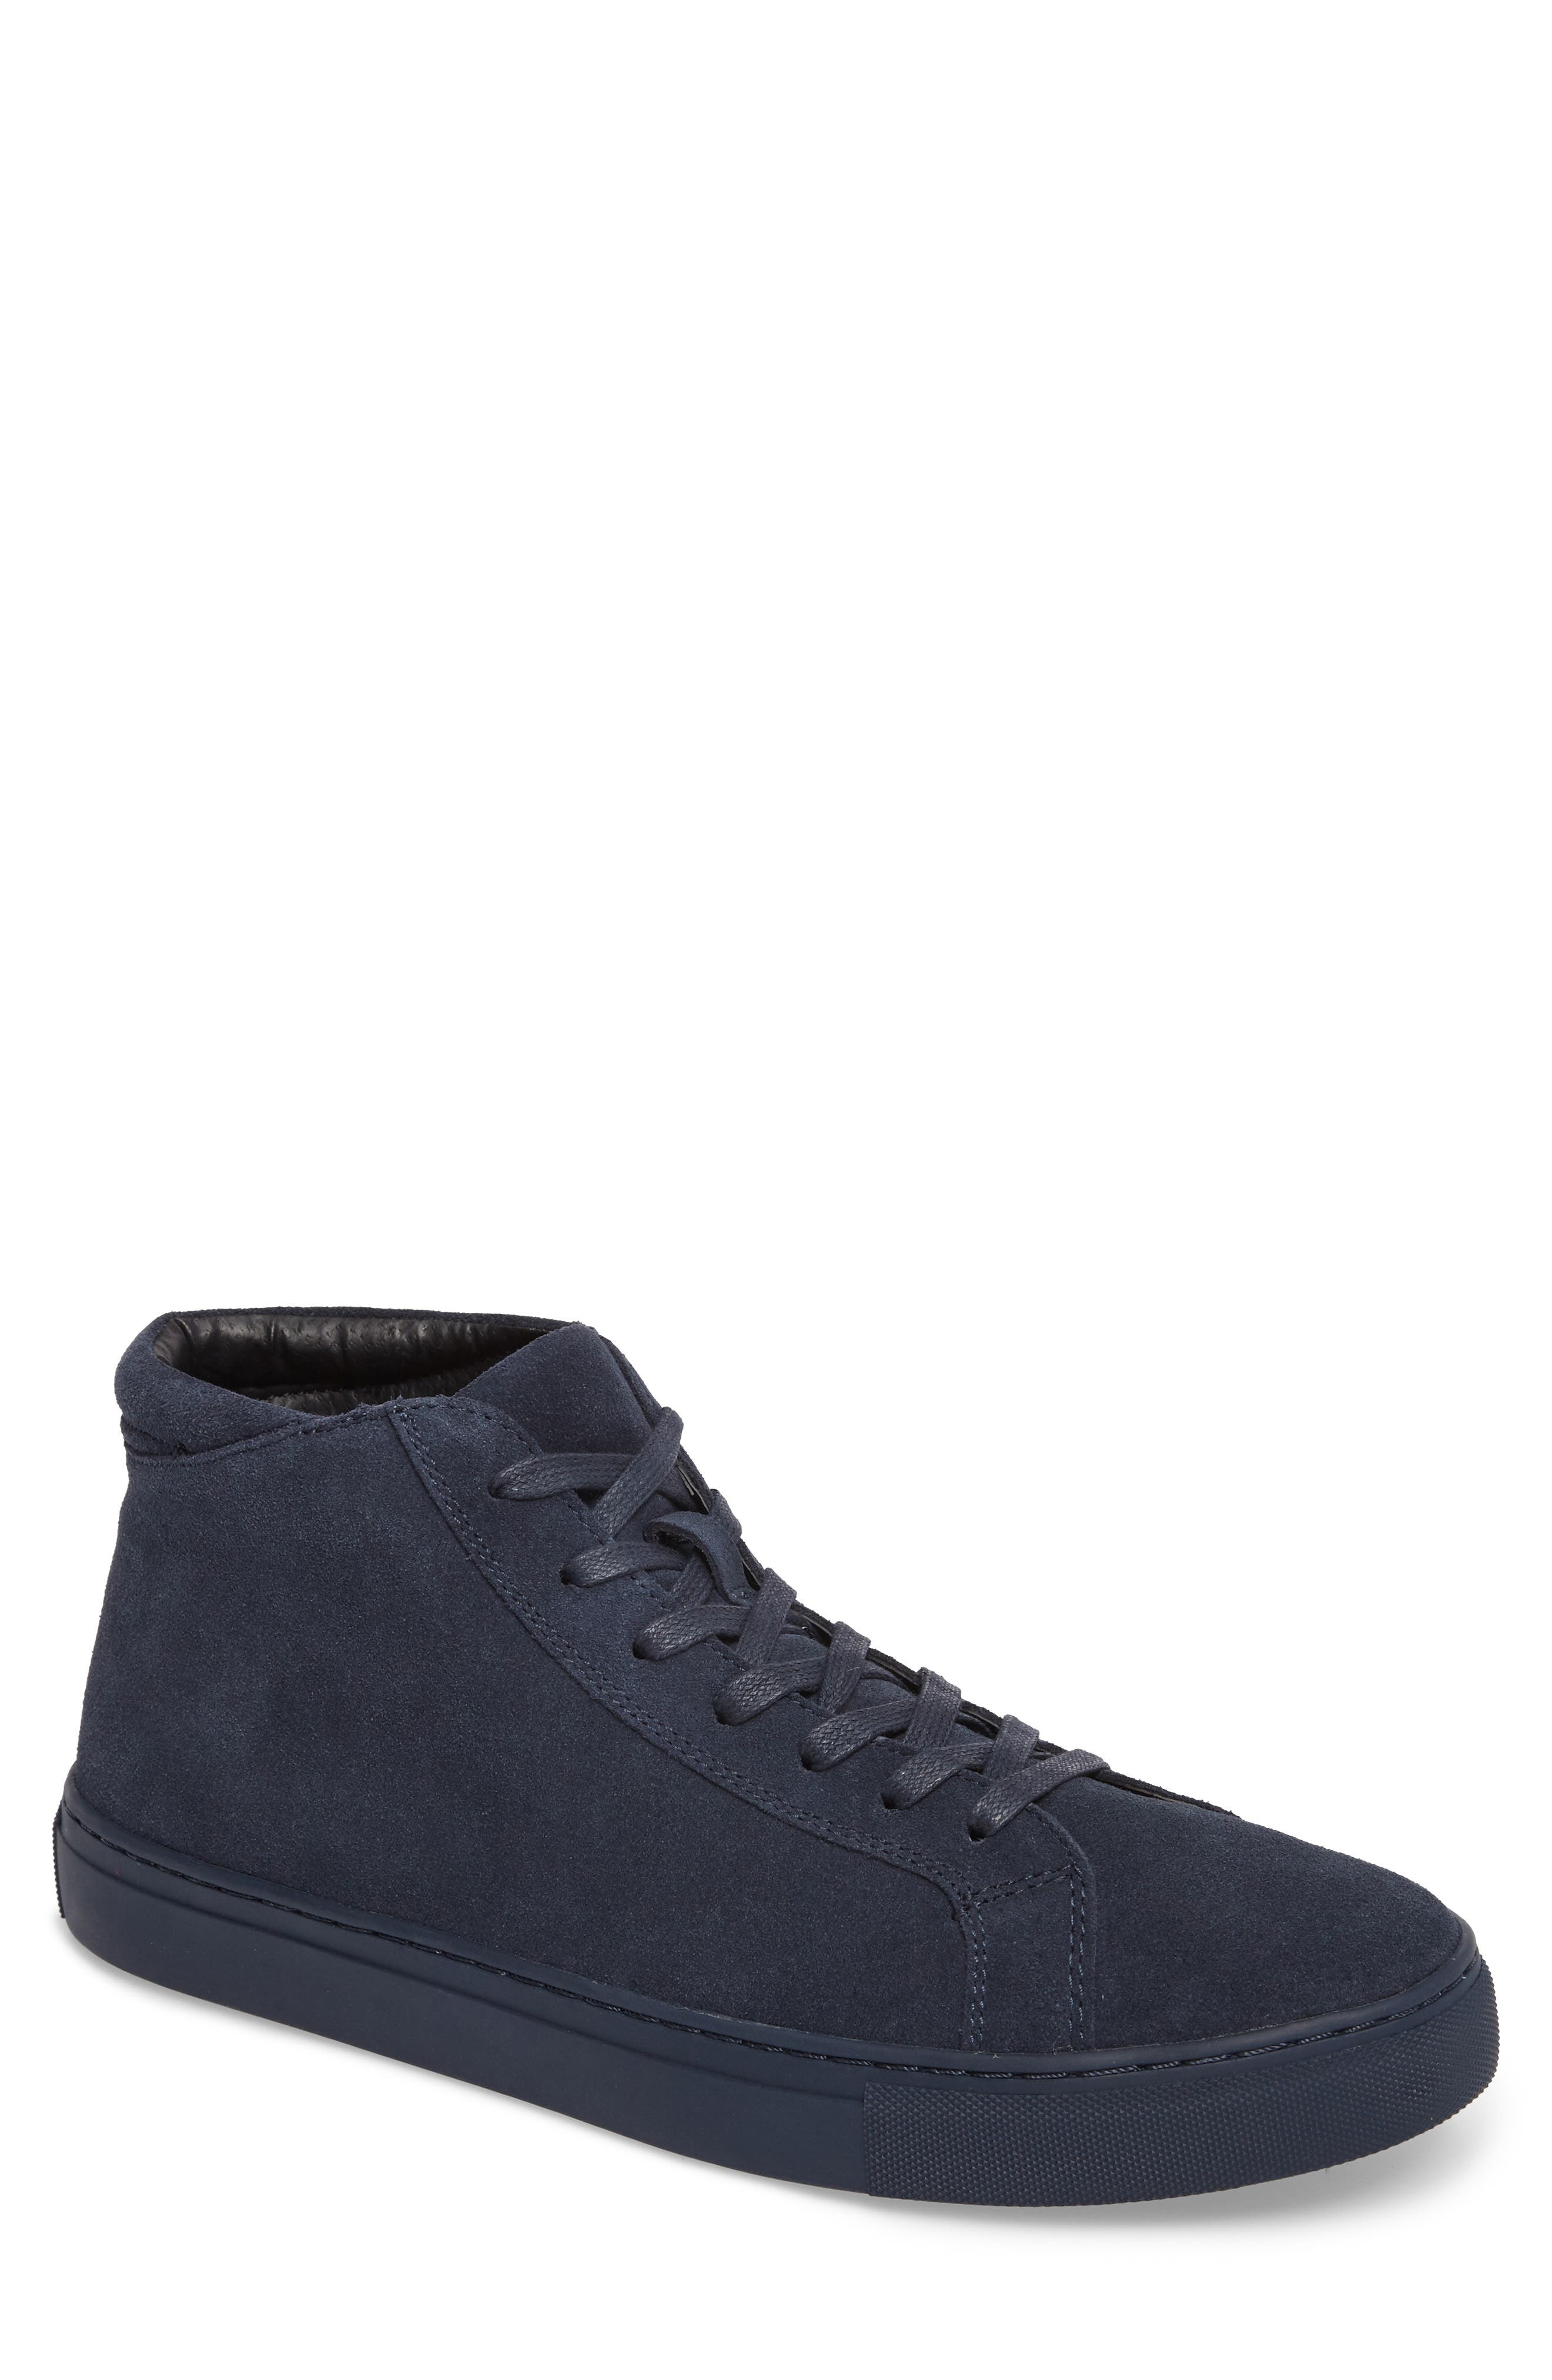 Alternate Image 1 Selected - Kenneth Cole Reaction Mid Sneaker (Men)